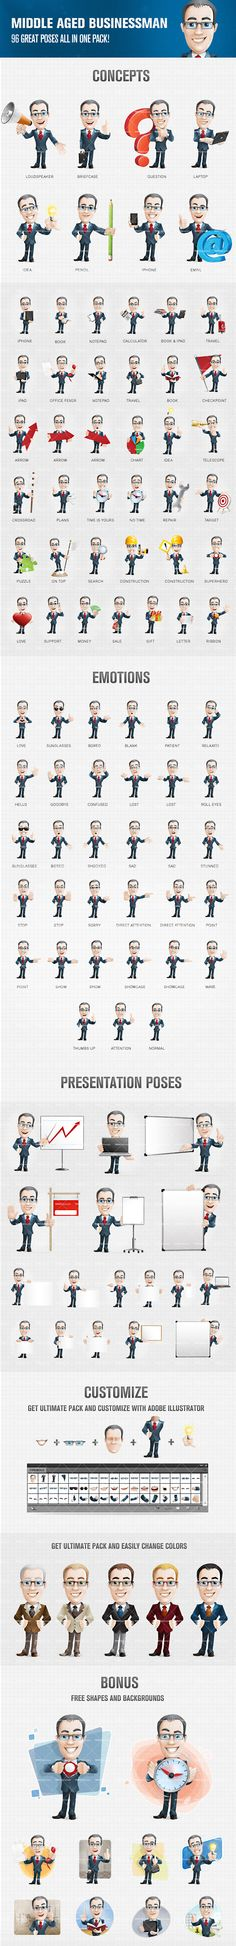 Cartoon character featuring neat and smart look. Our cartoon character set comes in 96 great poses and moods. Get our highly detailed set and use it for your business projects. Continue reading →